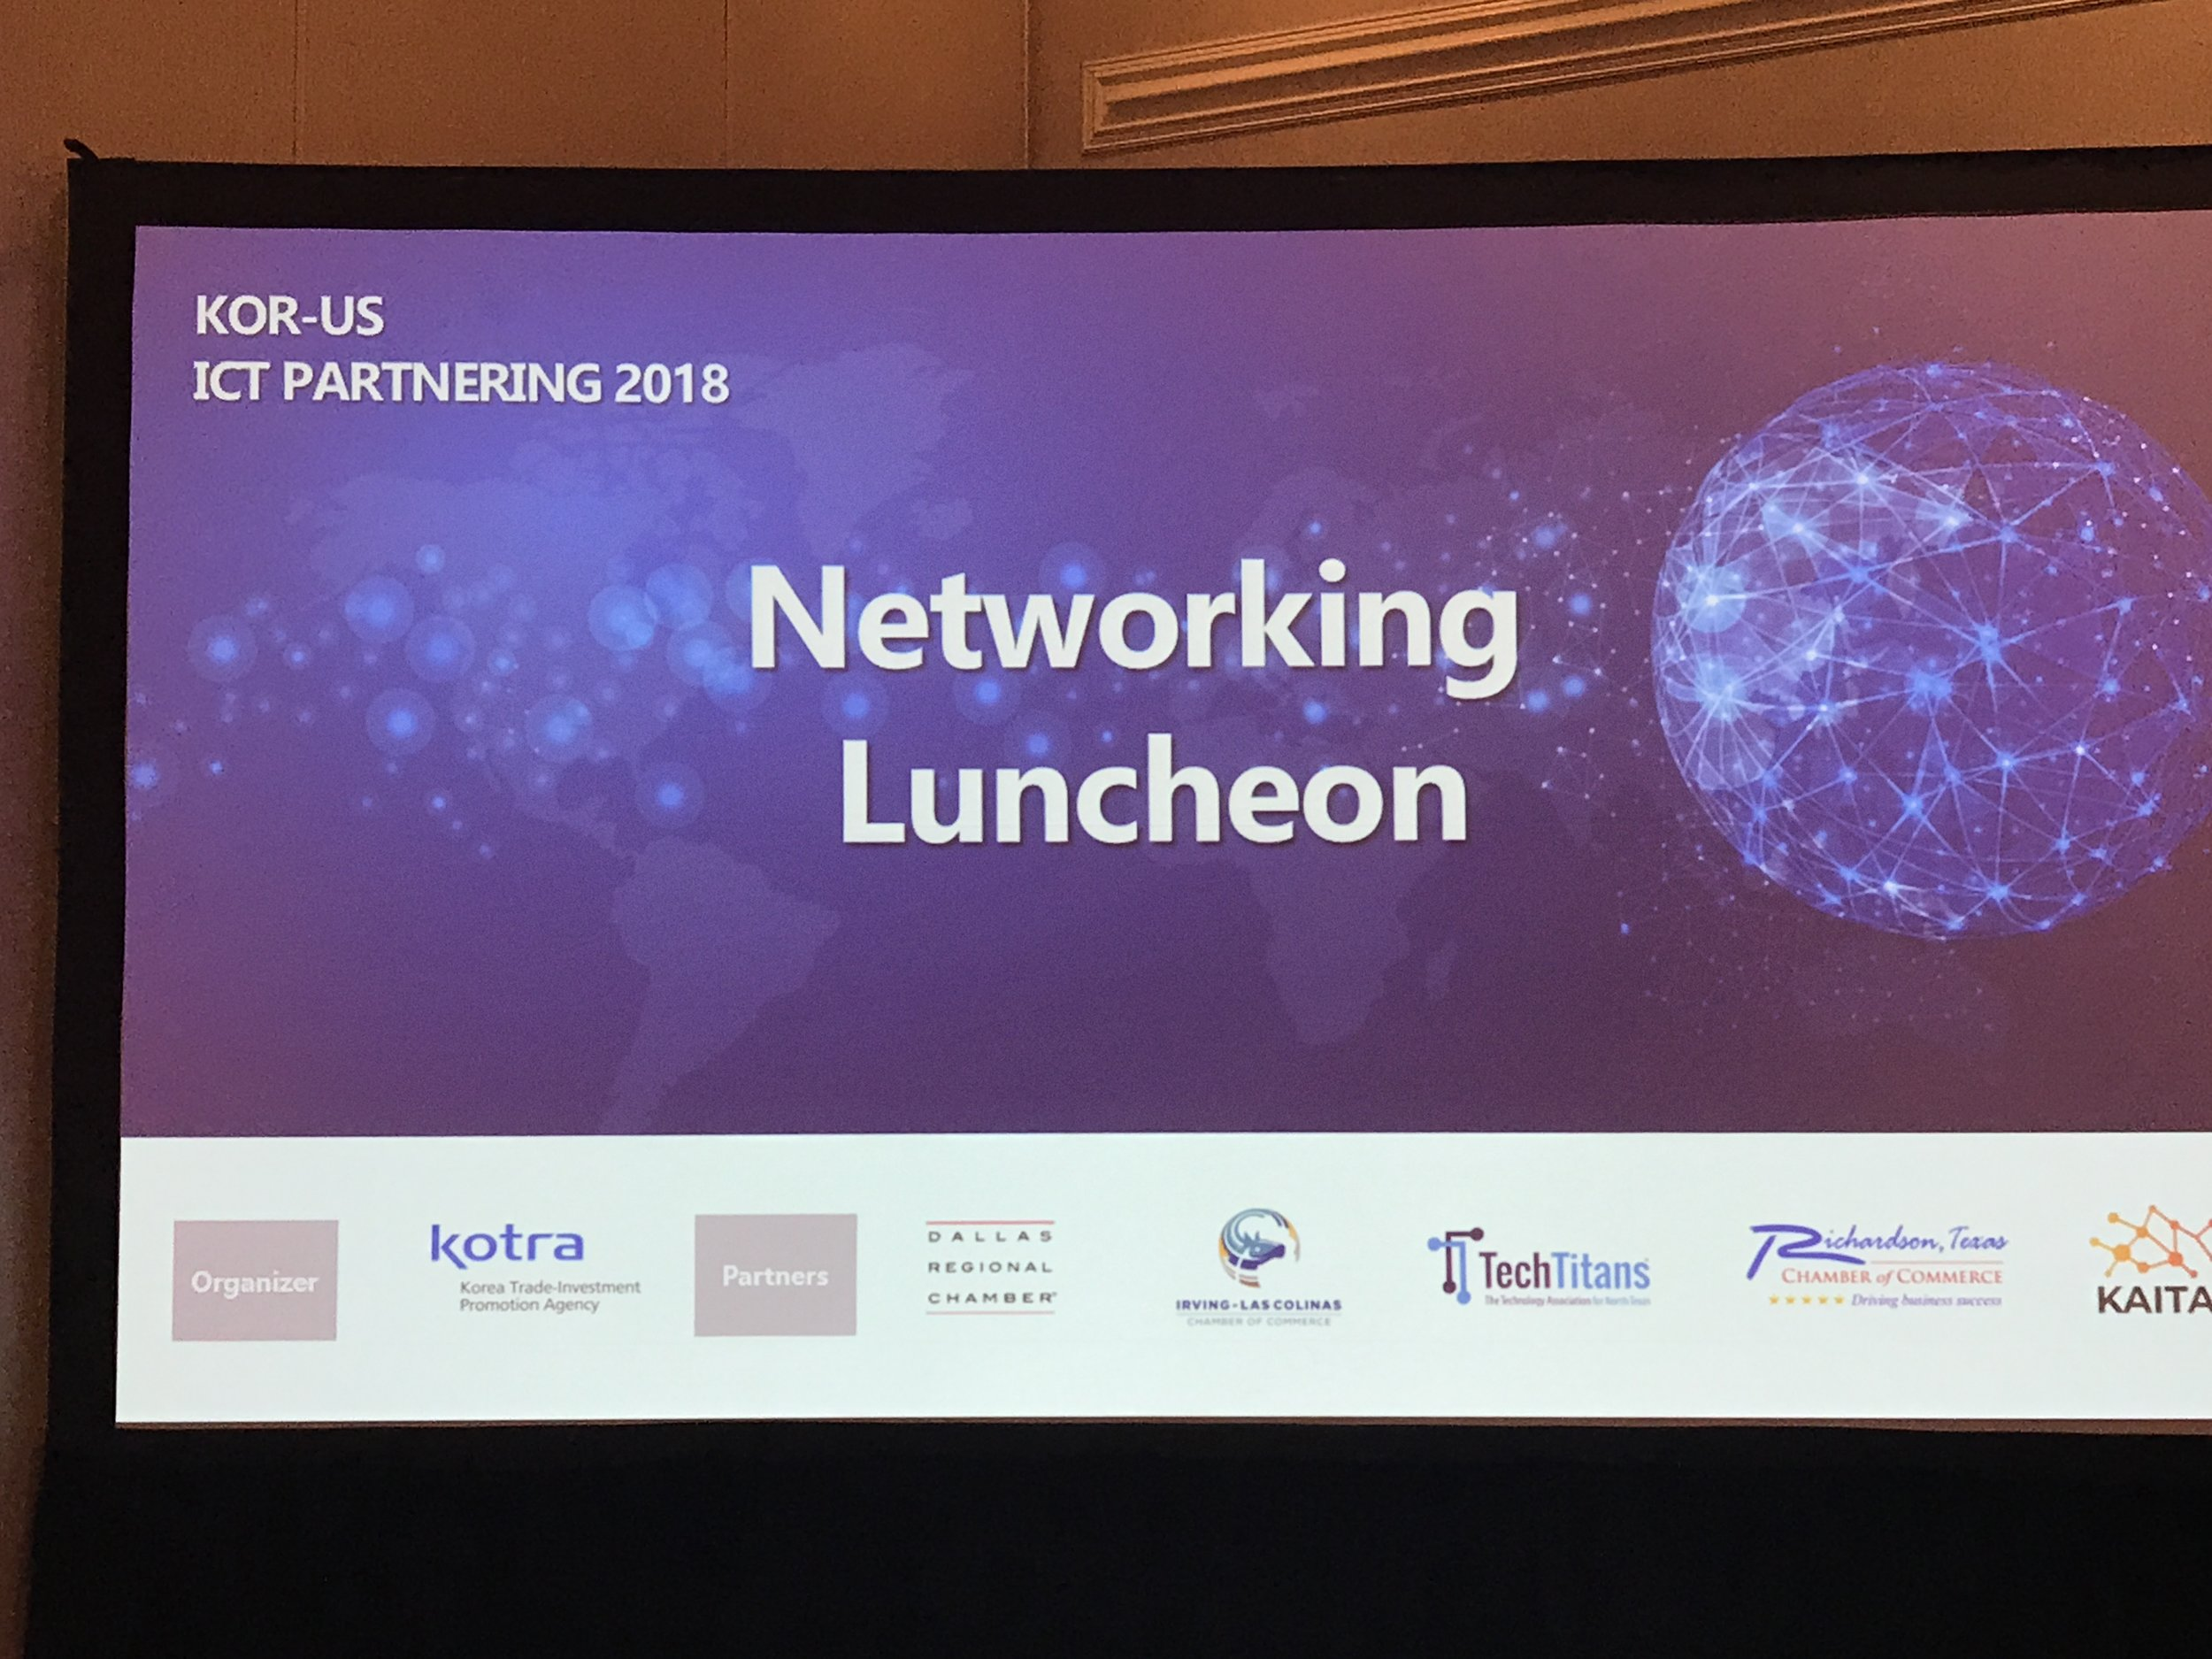 KOR-US ICT Partnering 2018 - exhibition & conference, luncheon